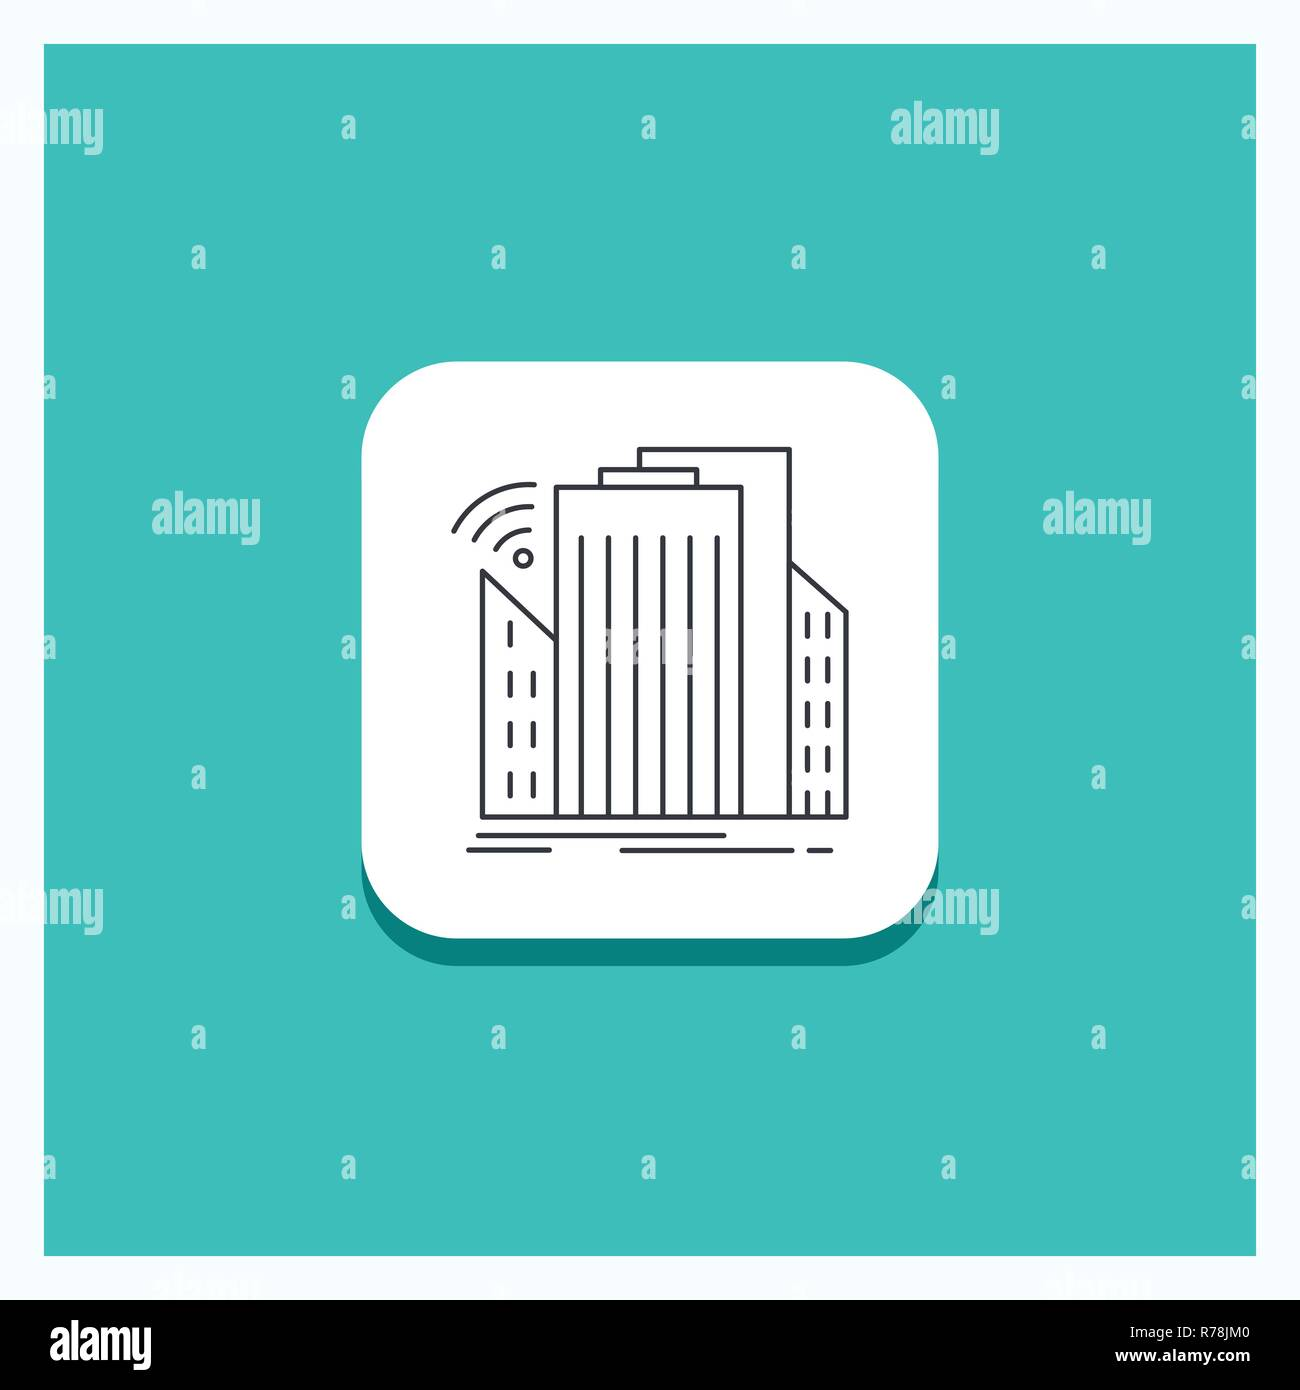 Round Button for Buildings, city, sensor, smart, urban Line icon Turquoise Background - Stock Vector